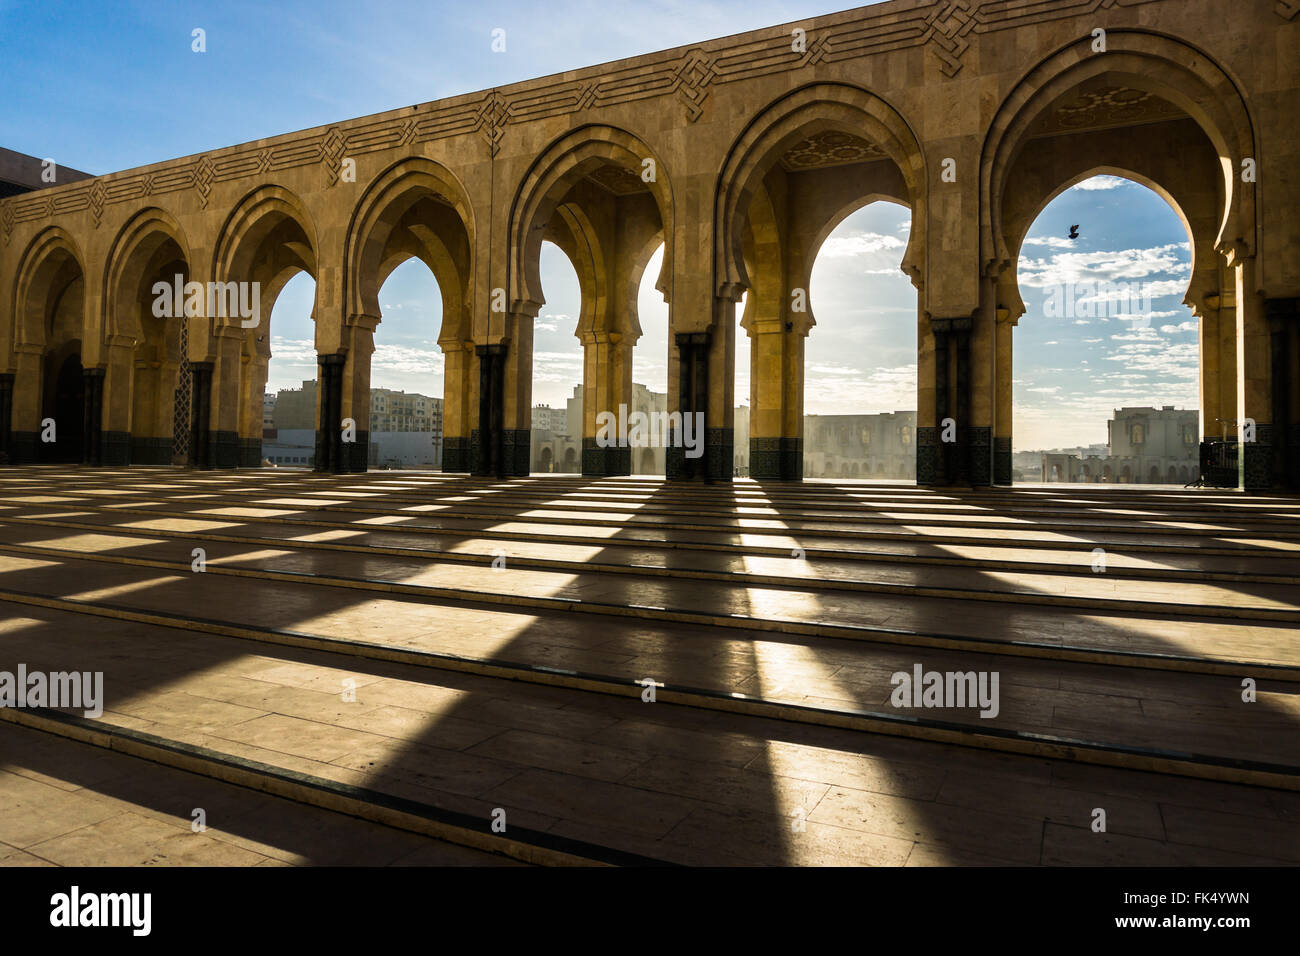 Shadows casted by Hassan II Mosque - Stock Image